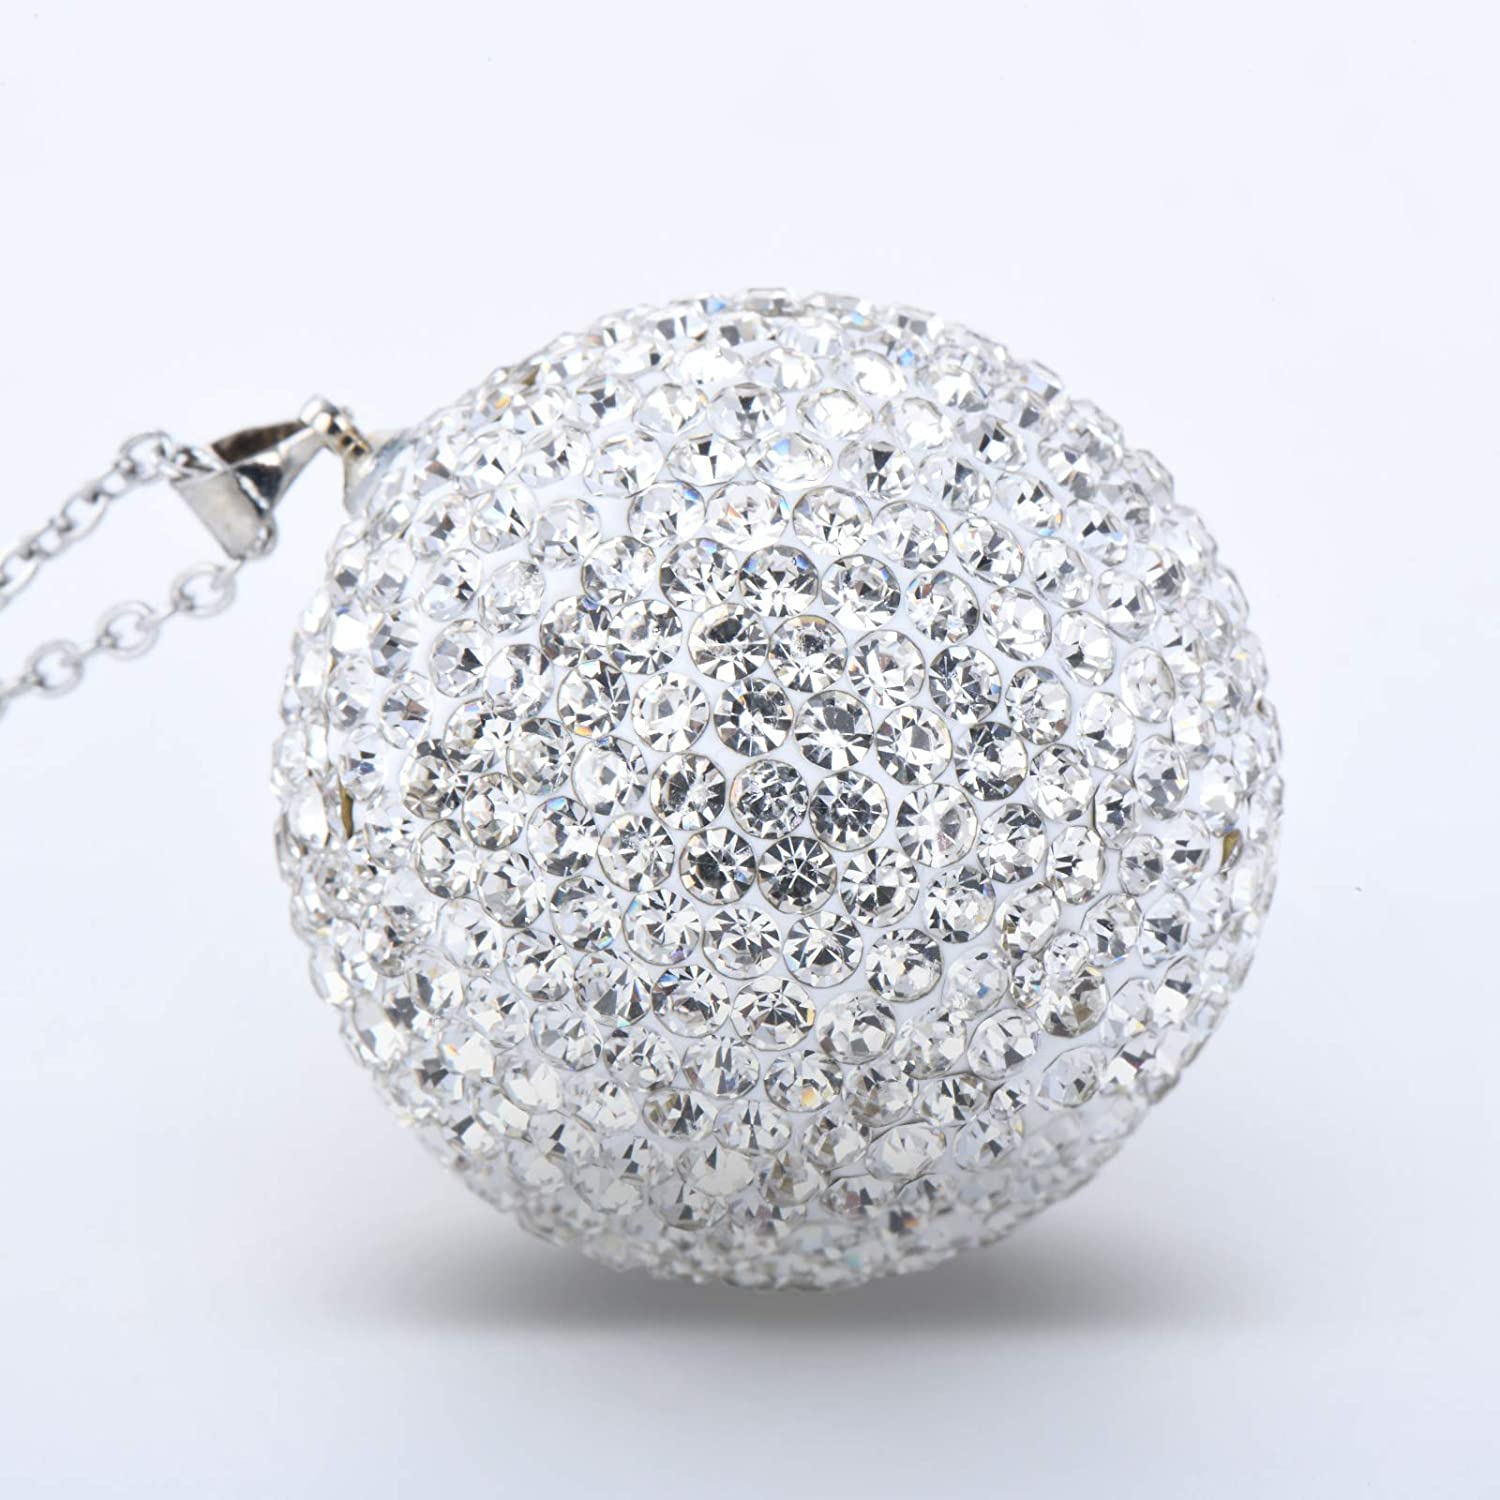 AntBooBoo Bling Crystal Ball for Car Rear View Mirror, Rhinestone Car Home Decor Hanging Ornament, Bling Car Accessories, Crystal Sun Catcher Ornament Car Glam Decoration Charm